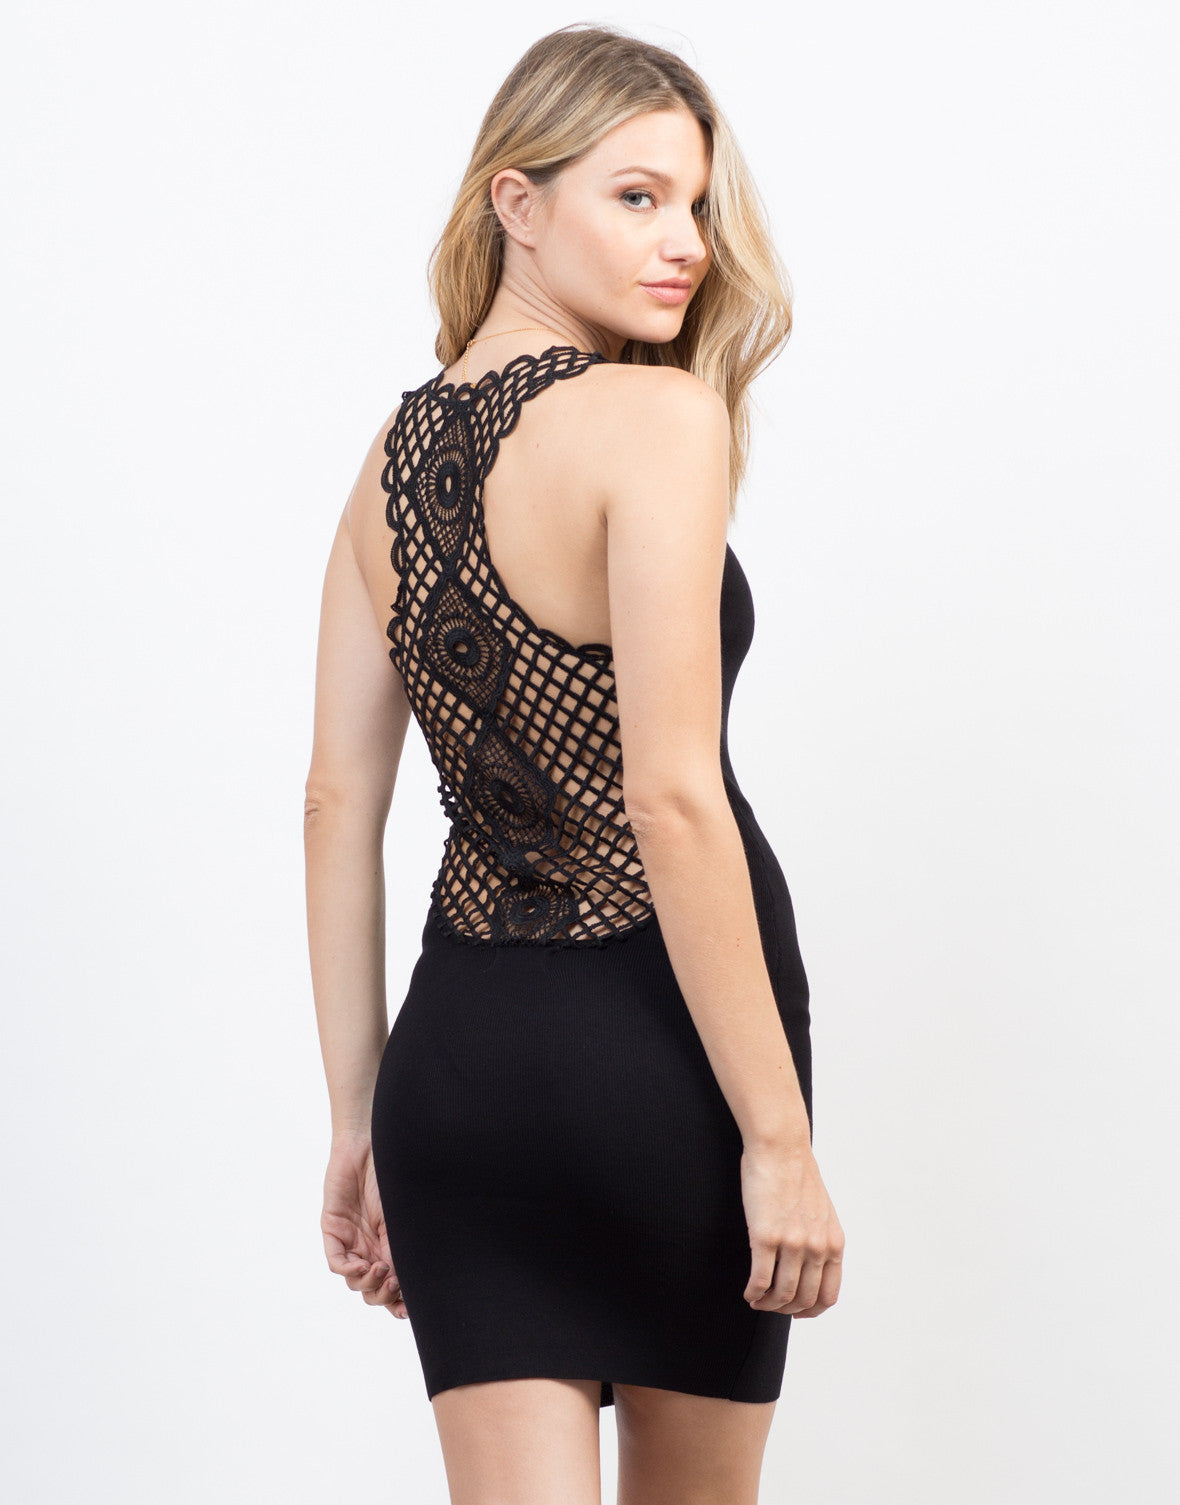 Back View of Little Crochet Black Dress